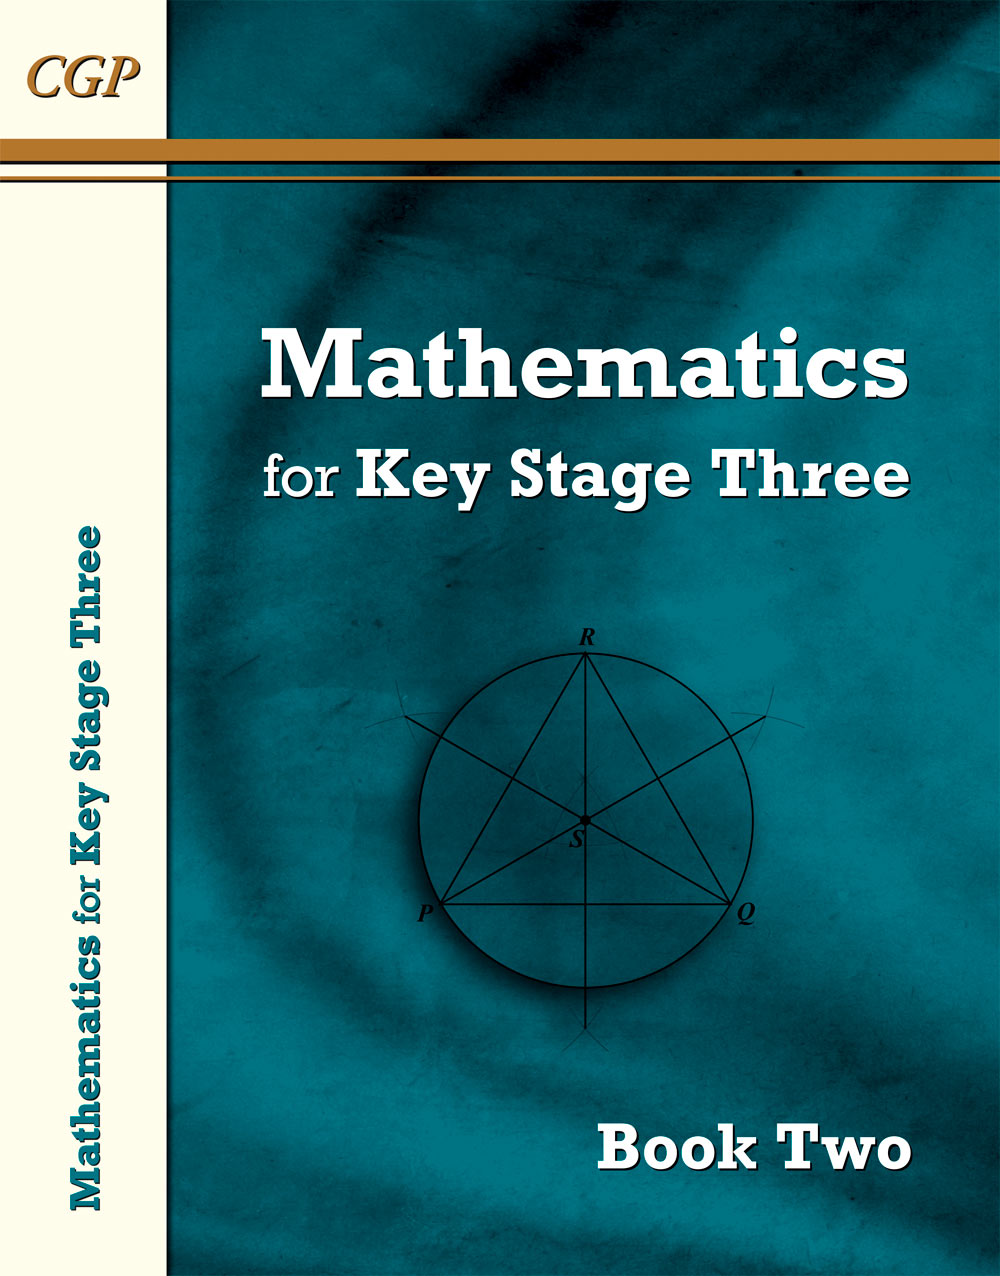 M2NN31 - KS3 Maths Textbook 2